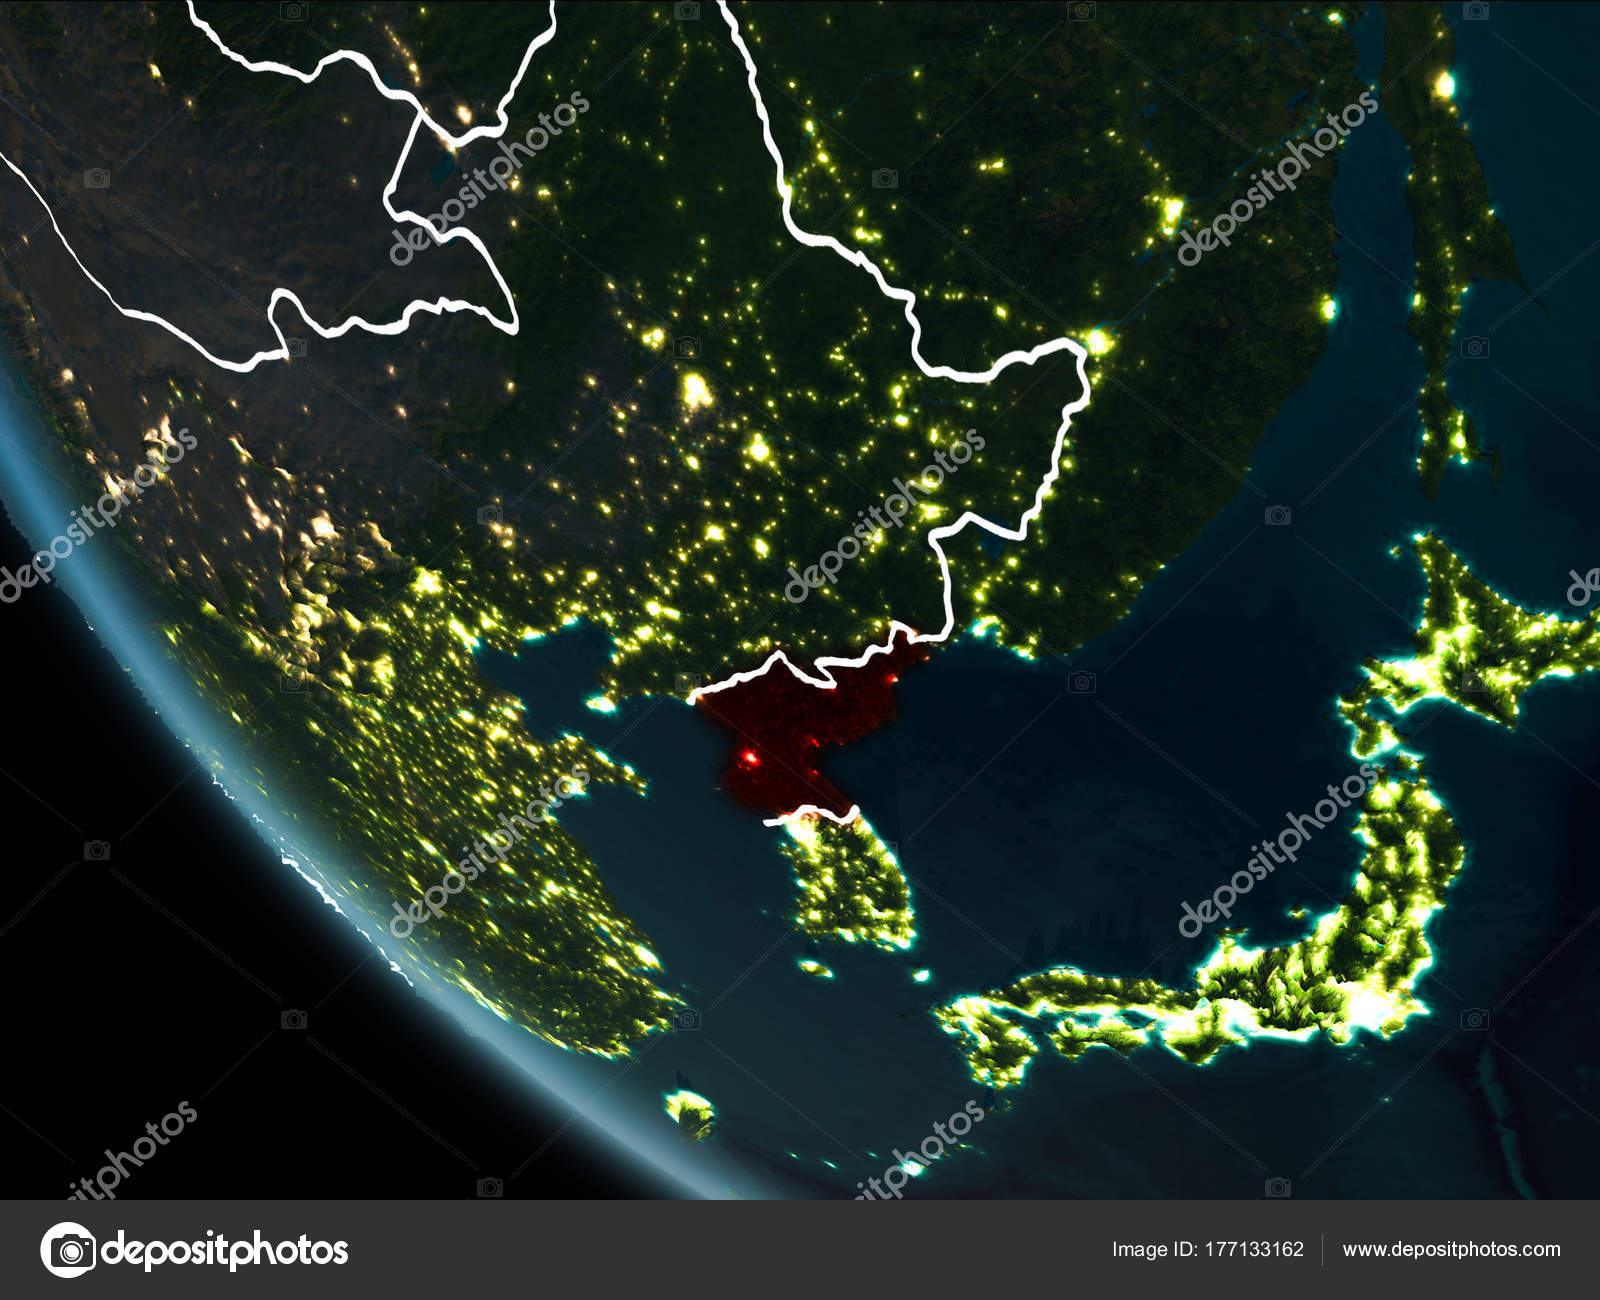 Satellite view of north korea at night stock photo tomiger satellite view of north korea highlighted in red on planet earth at night with borderlines and city lights 3d illustration gumiabroncs Image collections